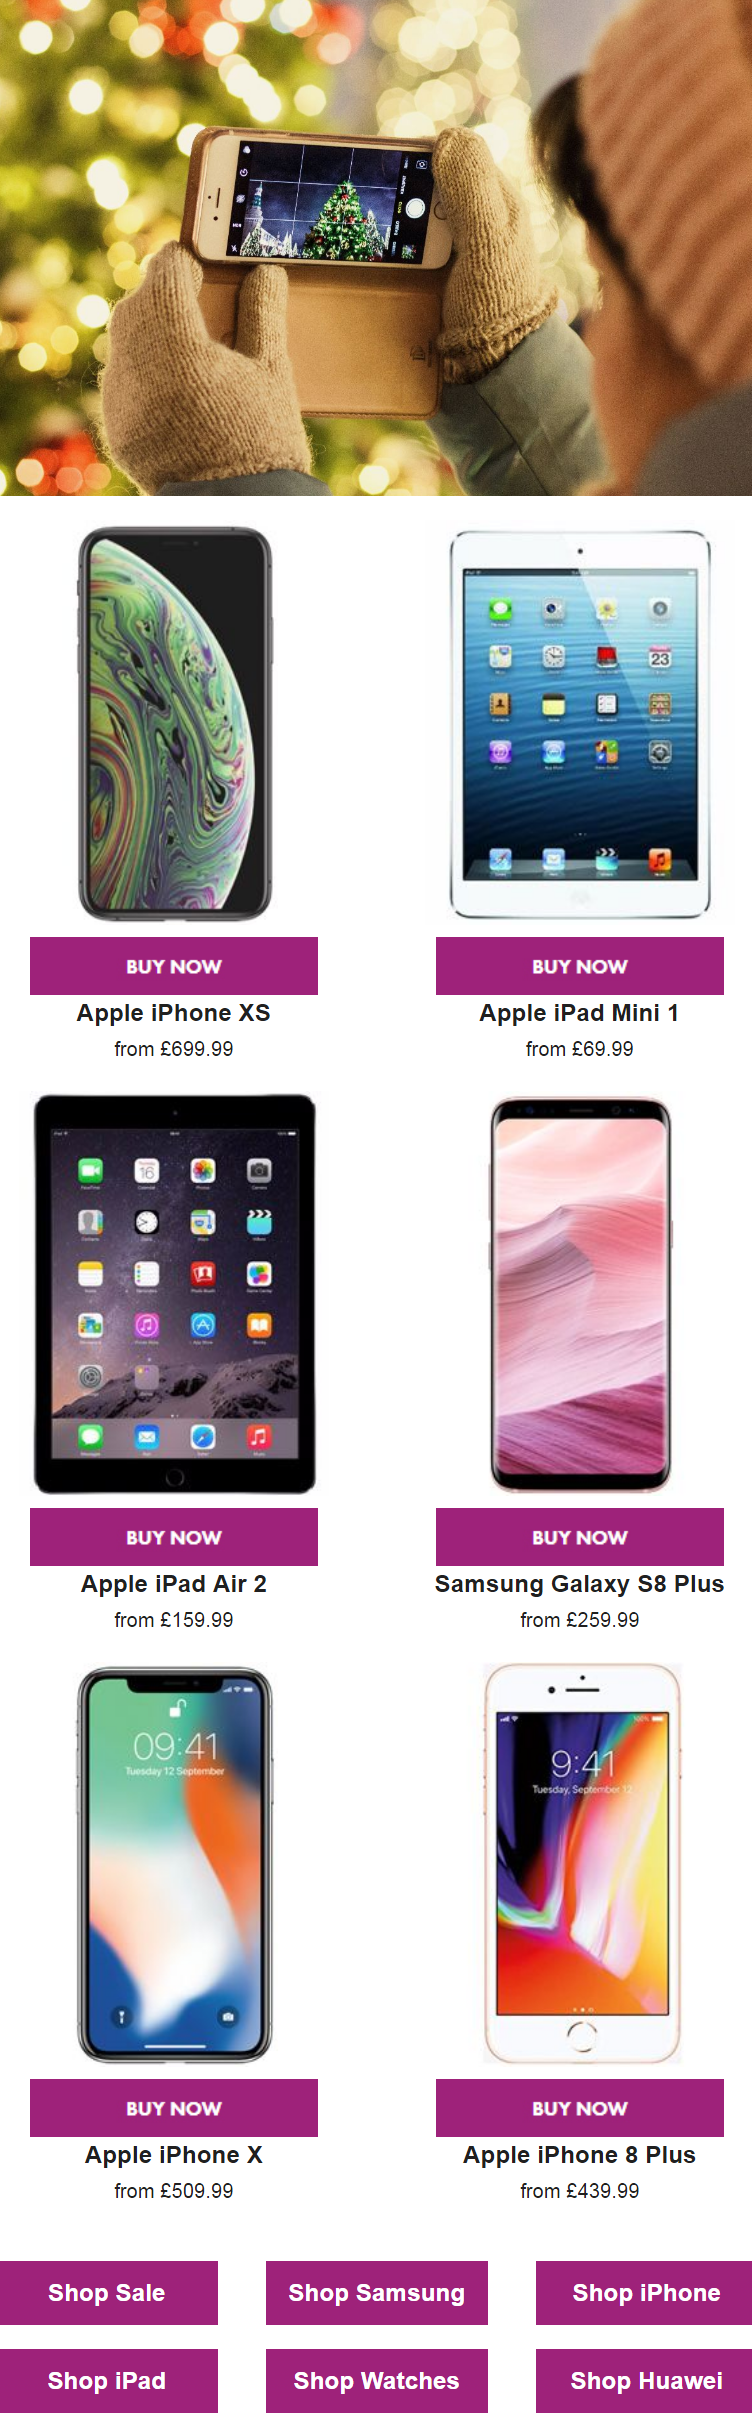 Shop the latest and best gadgets including iPhones, Samsungs, iPads at the lowest prices, receive th...